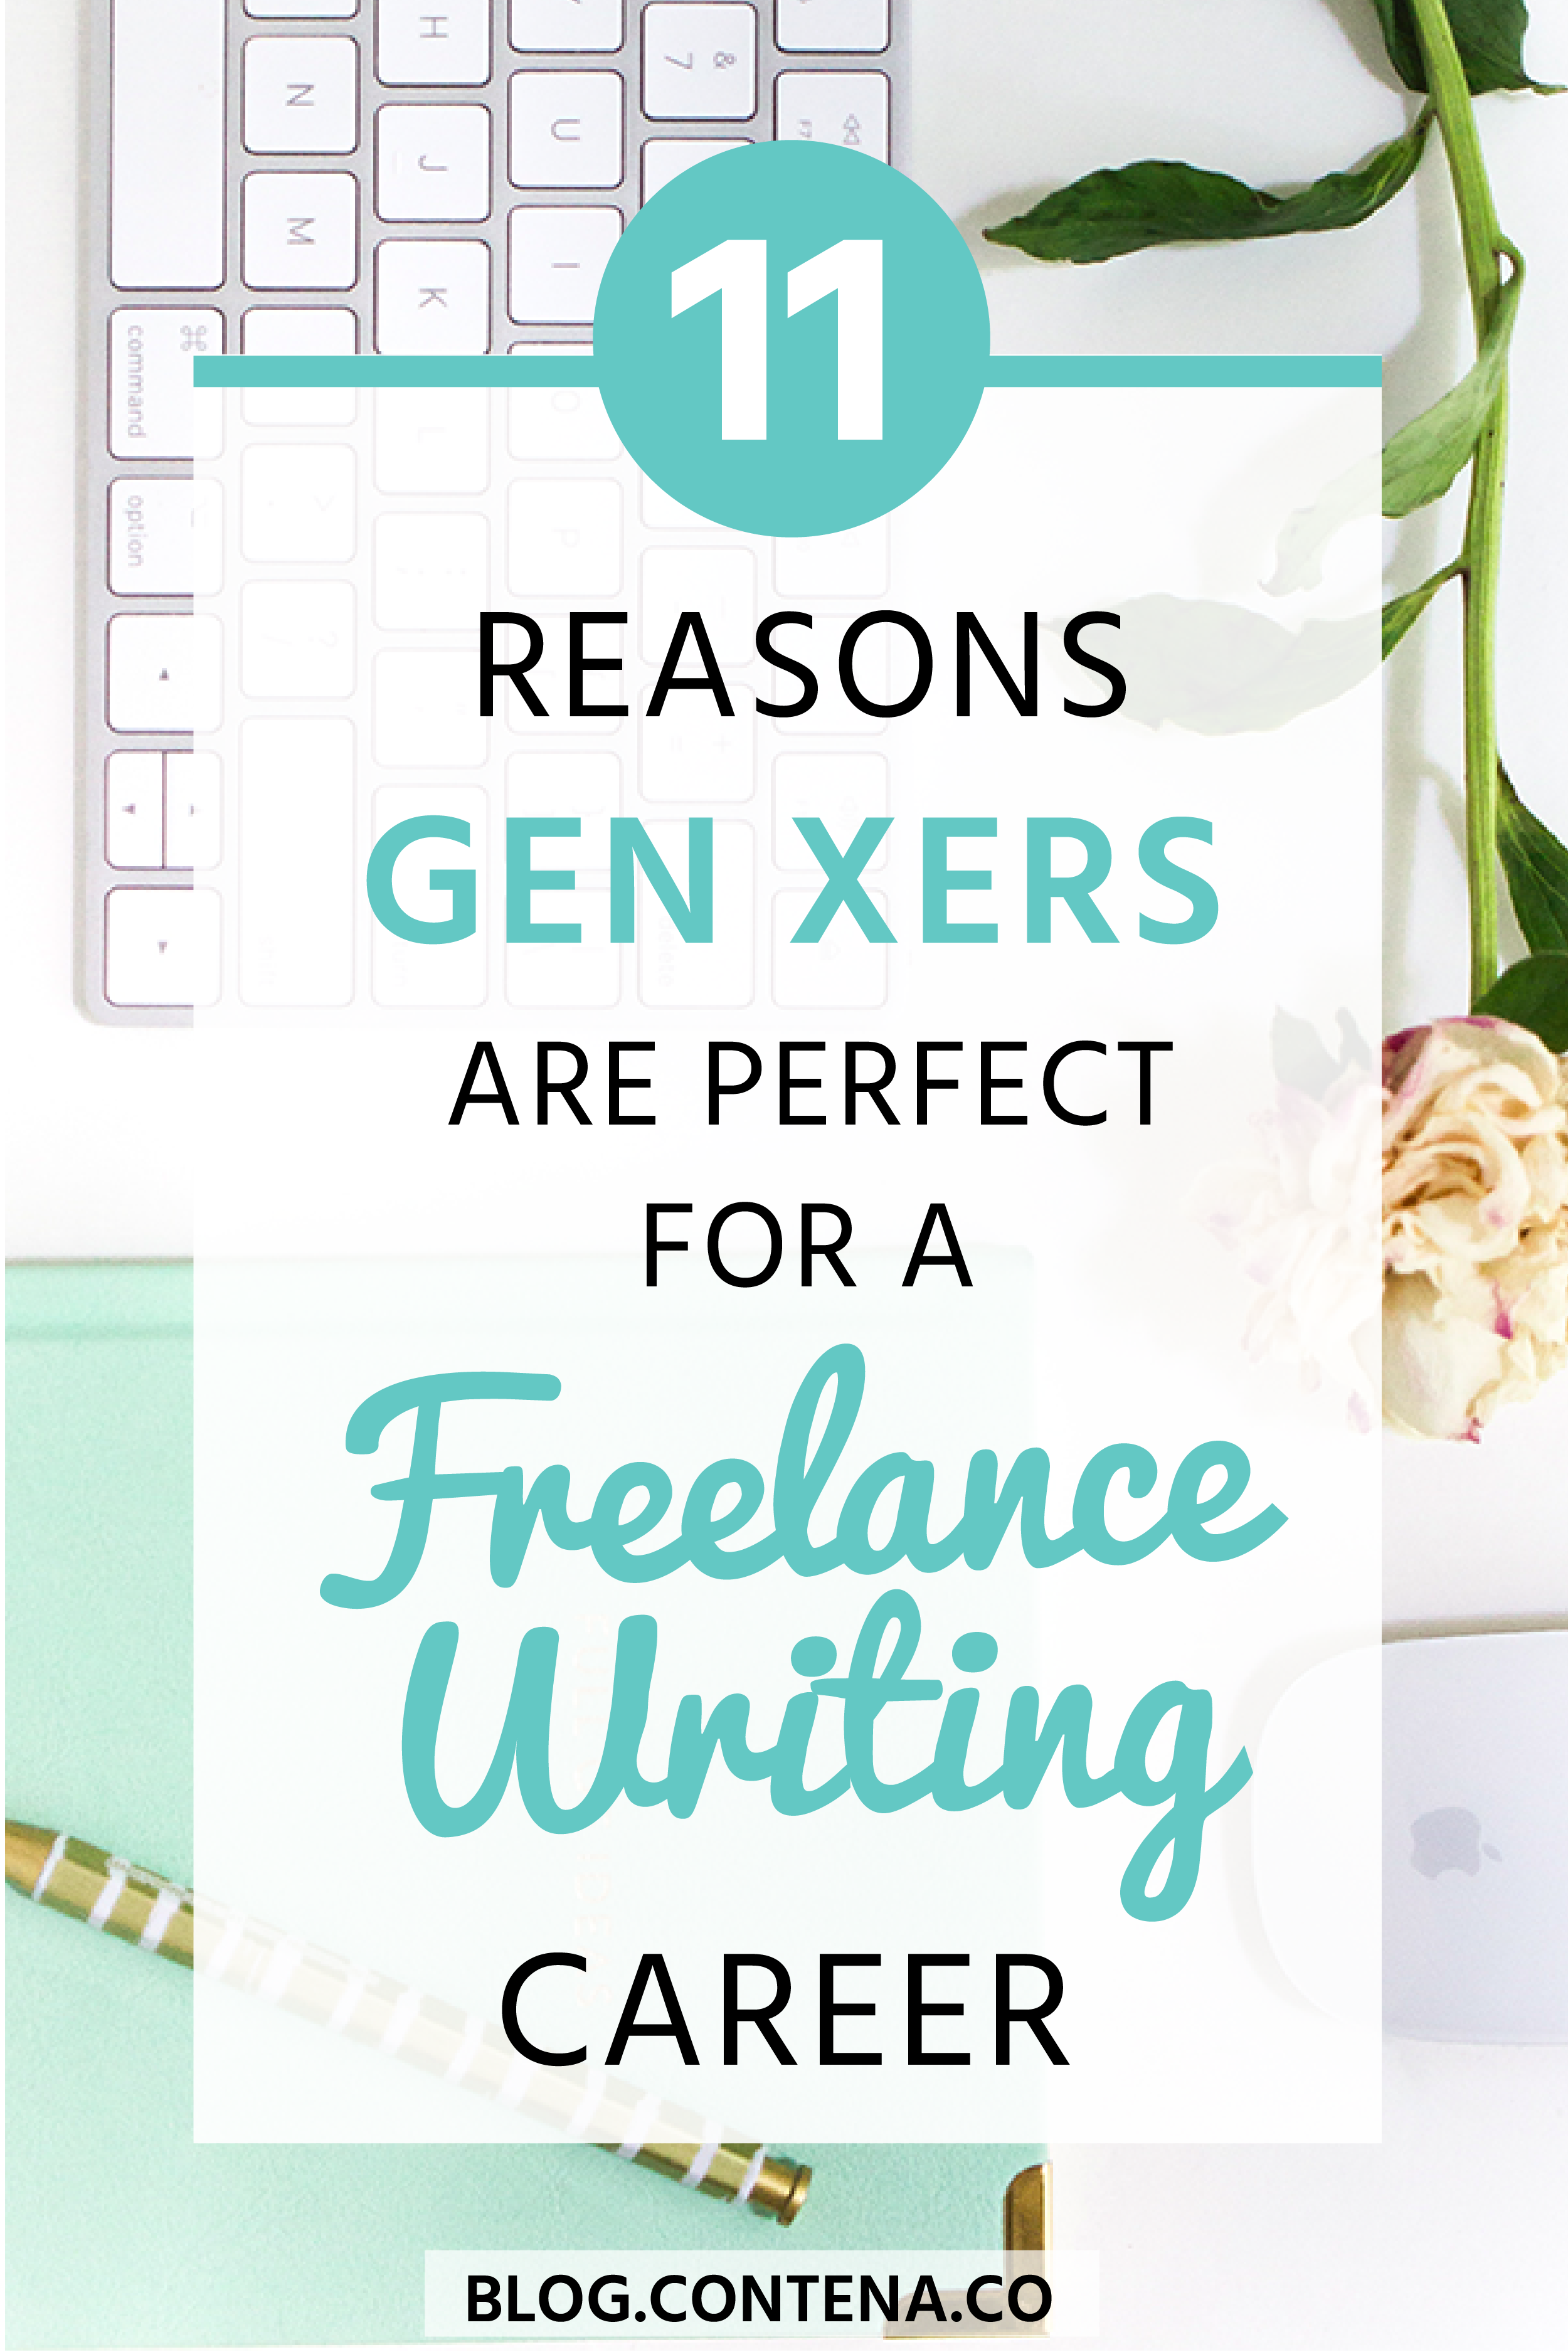 Are you a member of Gen X looking for a career change? Or maybe you're a GenXer who wants a flexible lifestyle and work-life balance. Being a freelance writer might be the career you've been looking for- this article covers why Gen X are great candidates for a freelance writing career. #GenX #Career #WorkLifeBalance #FreelanceWriting #Freelancer #WorkFromHome #SideHustle #Money #OnlineBusiness #Writing #WritingJobs #Money